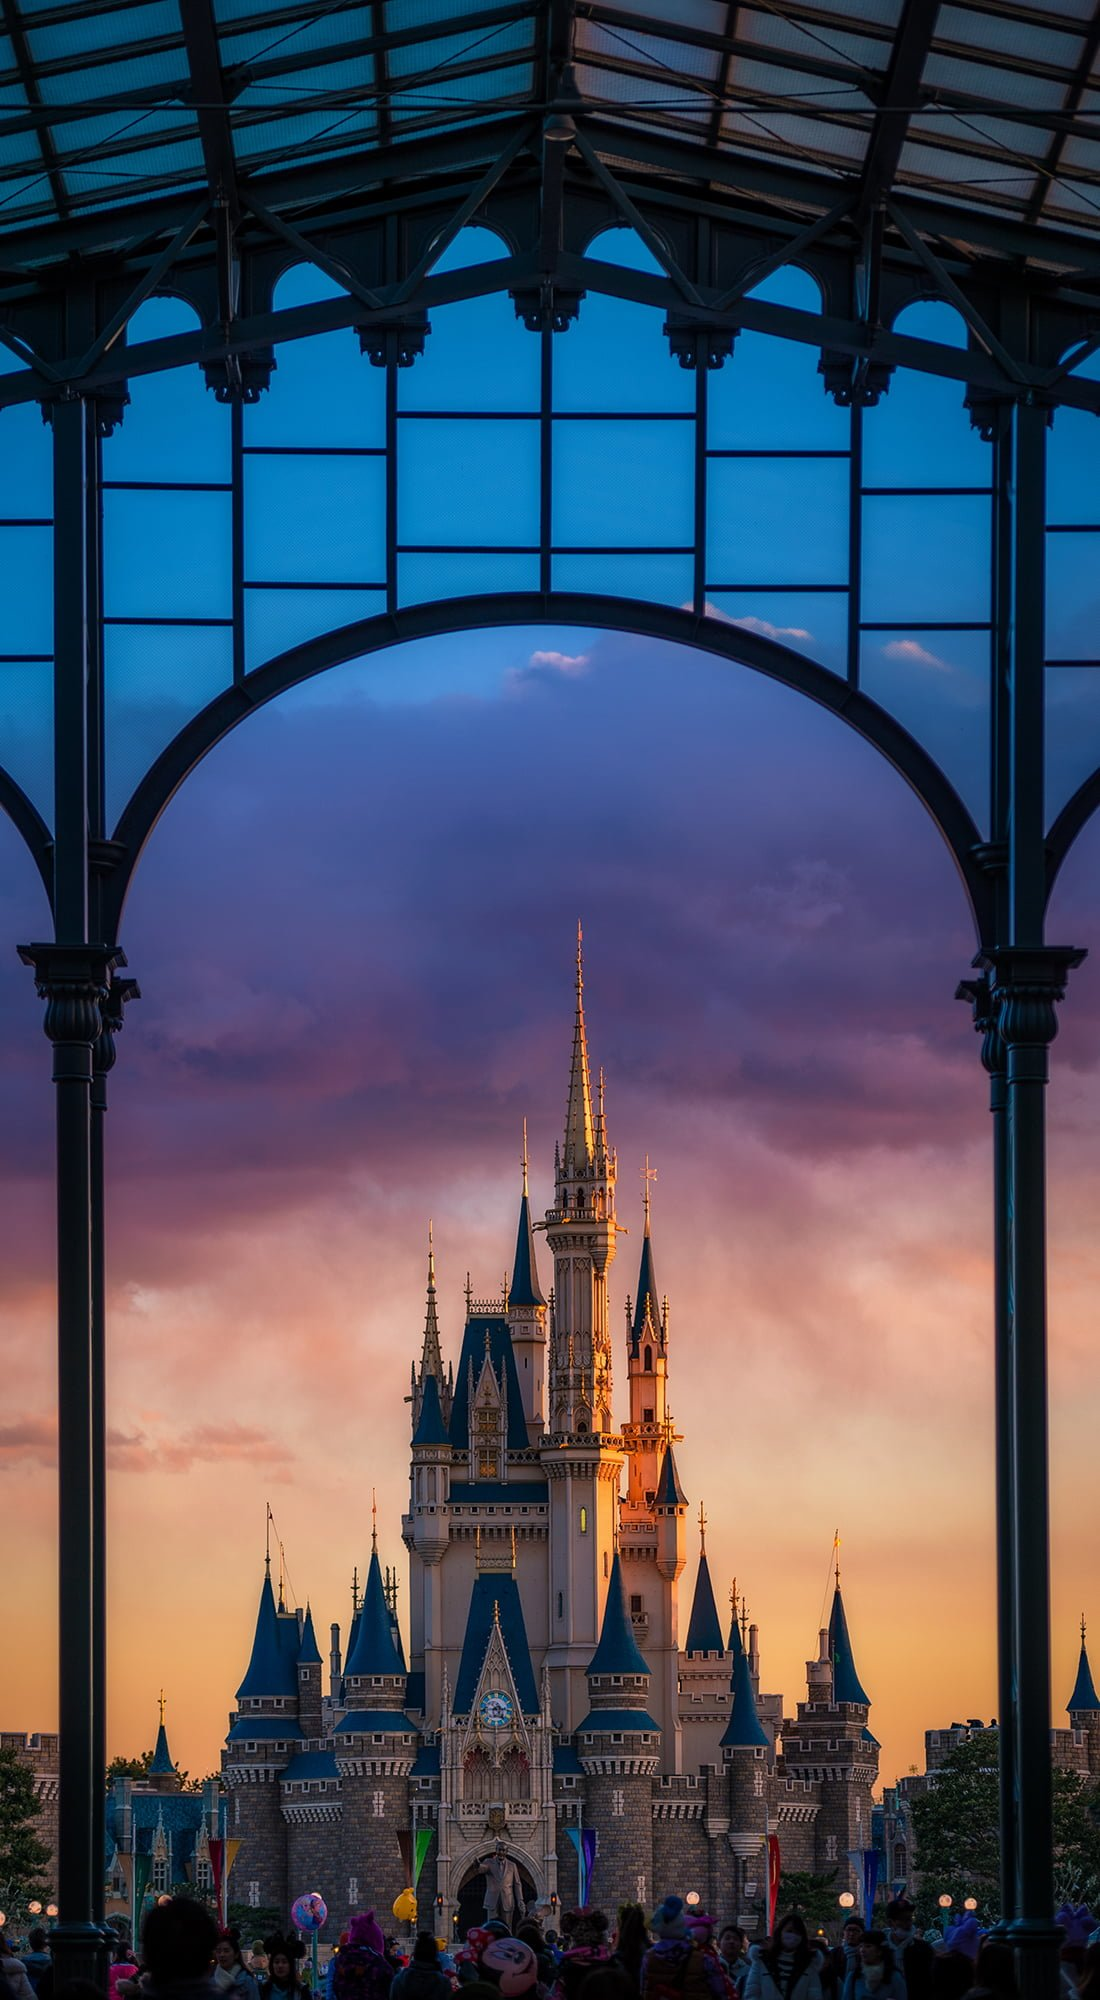 Free Disney iPhone Wallpapers - Disney Tourist Blog